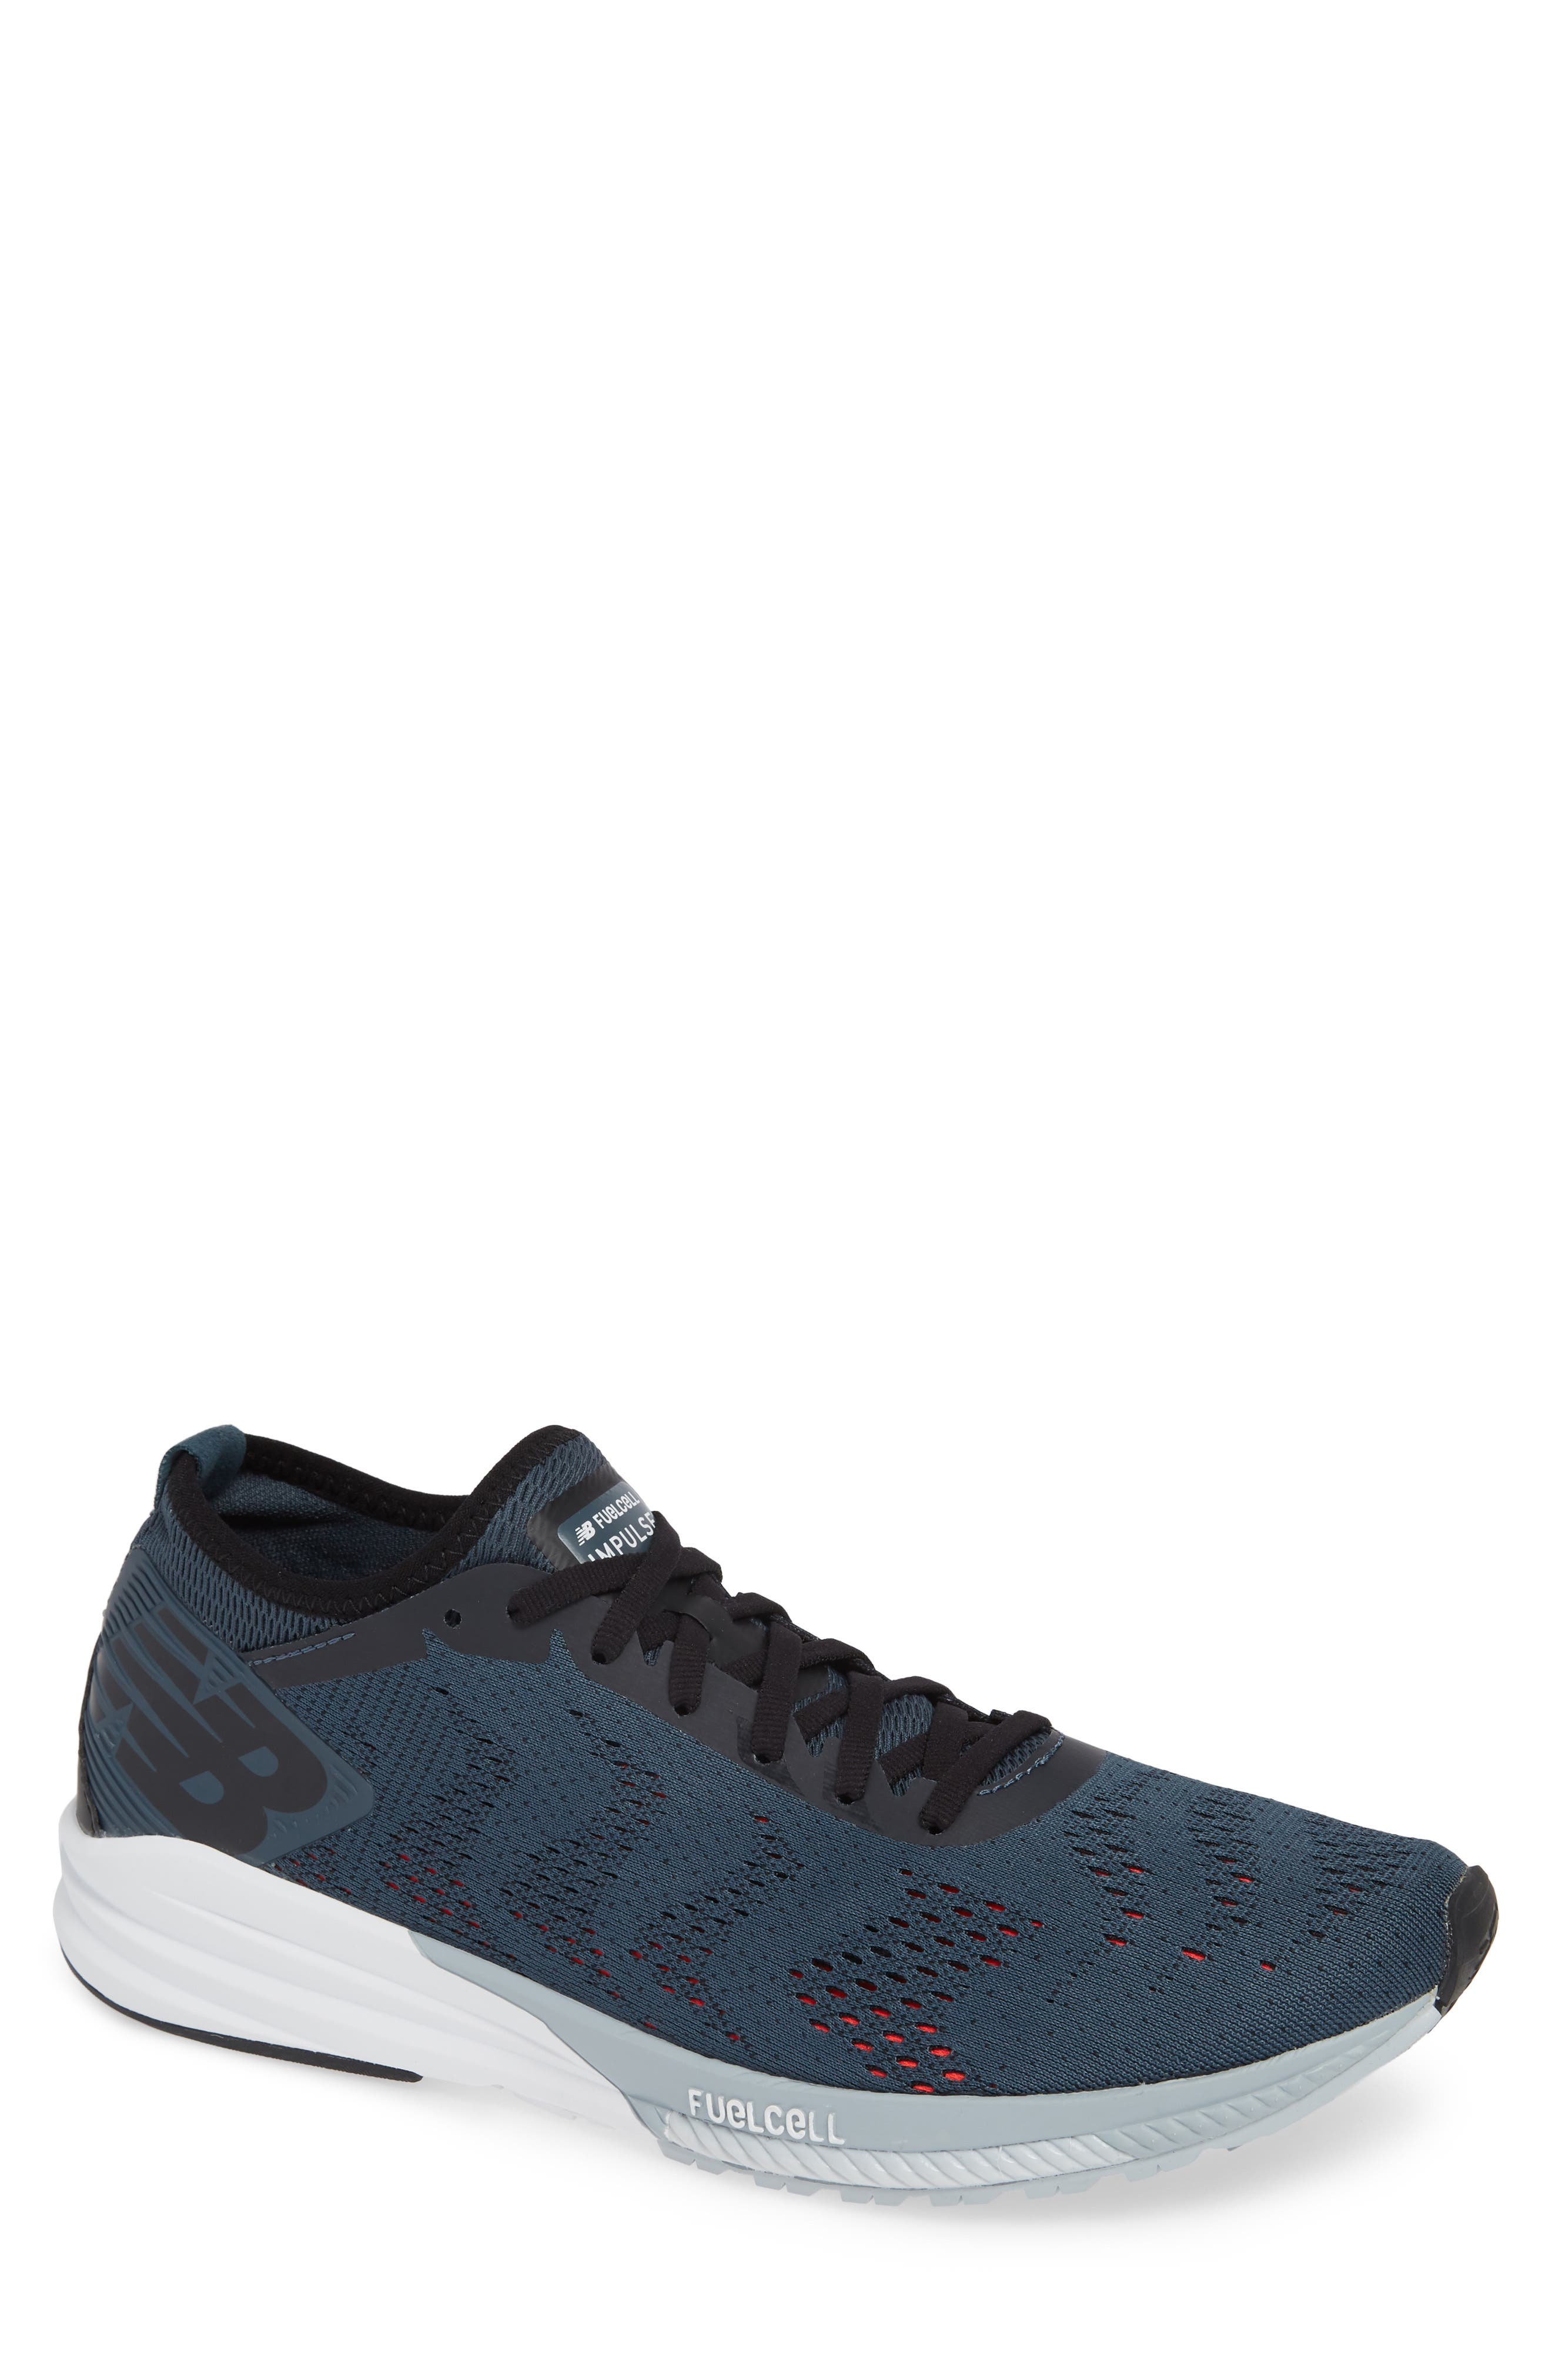 FuelCell Impulse Running Shoe,                         Main,                         color, PETROL